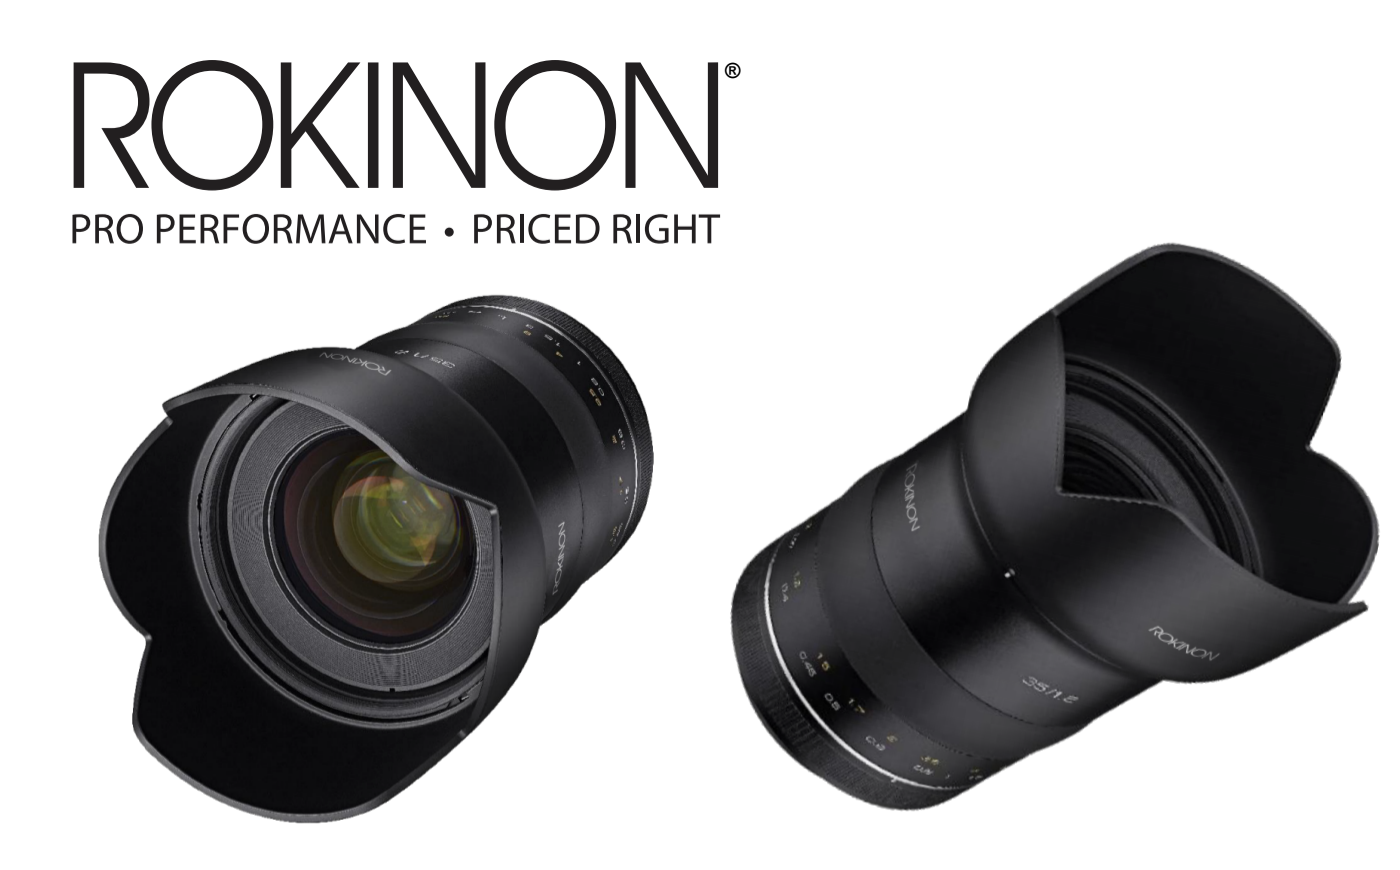 Unfortunately, The New Rokinon SP 35mm f1.2 Only Comes in Canon EF Mount